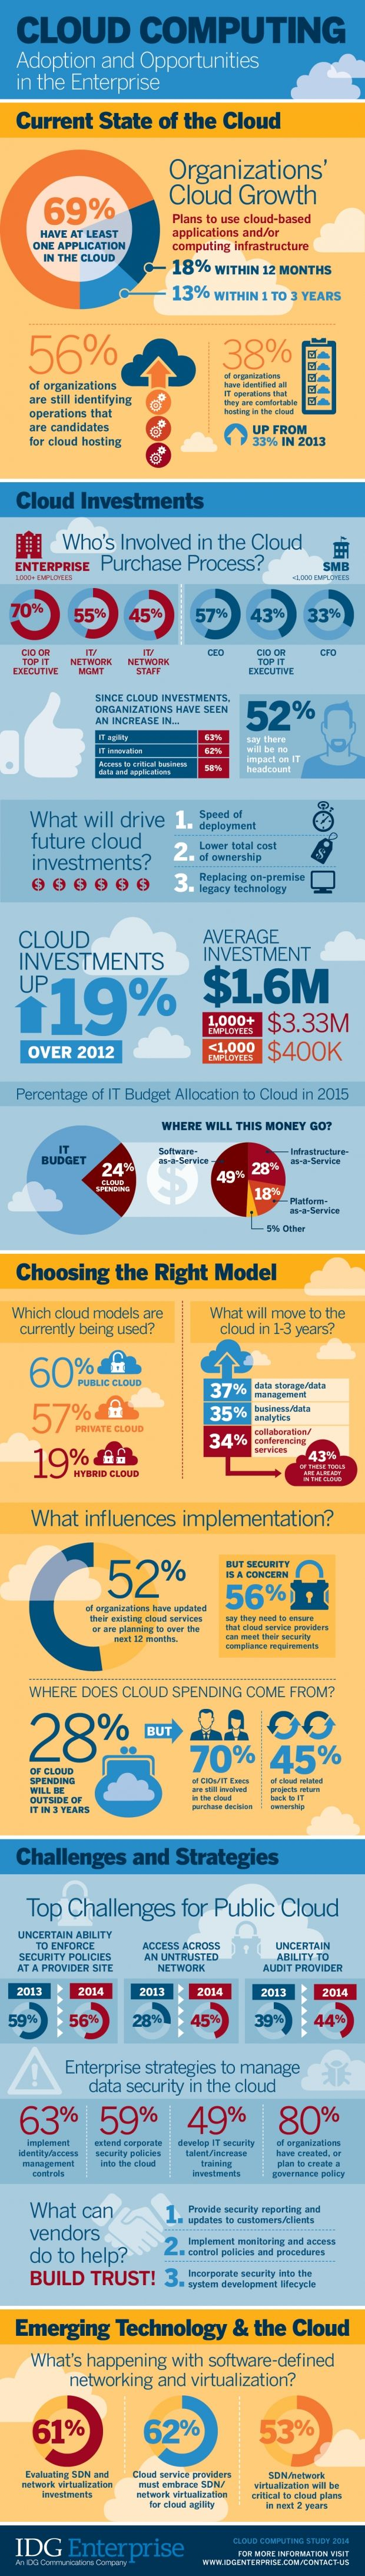 Nobody understands the cloud! #cloudcomputing #infographic. http://econintersect.com/pages/infographics/infographic.php?post=201502225918